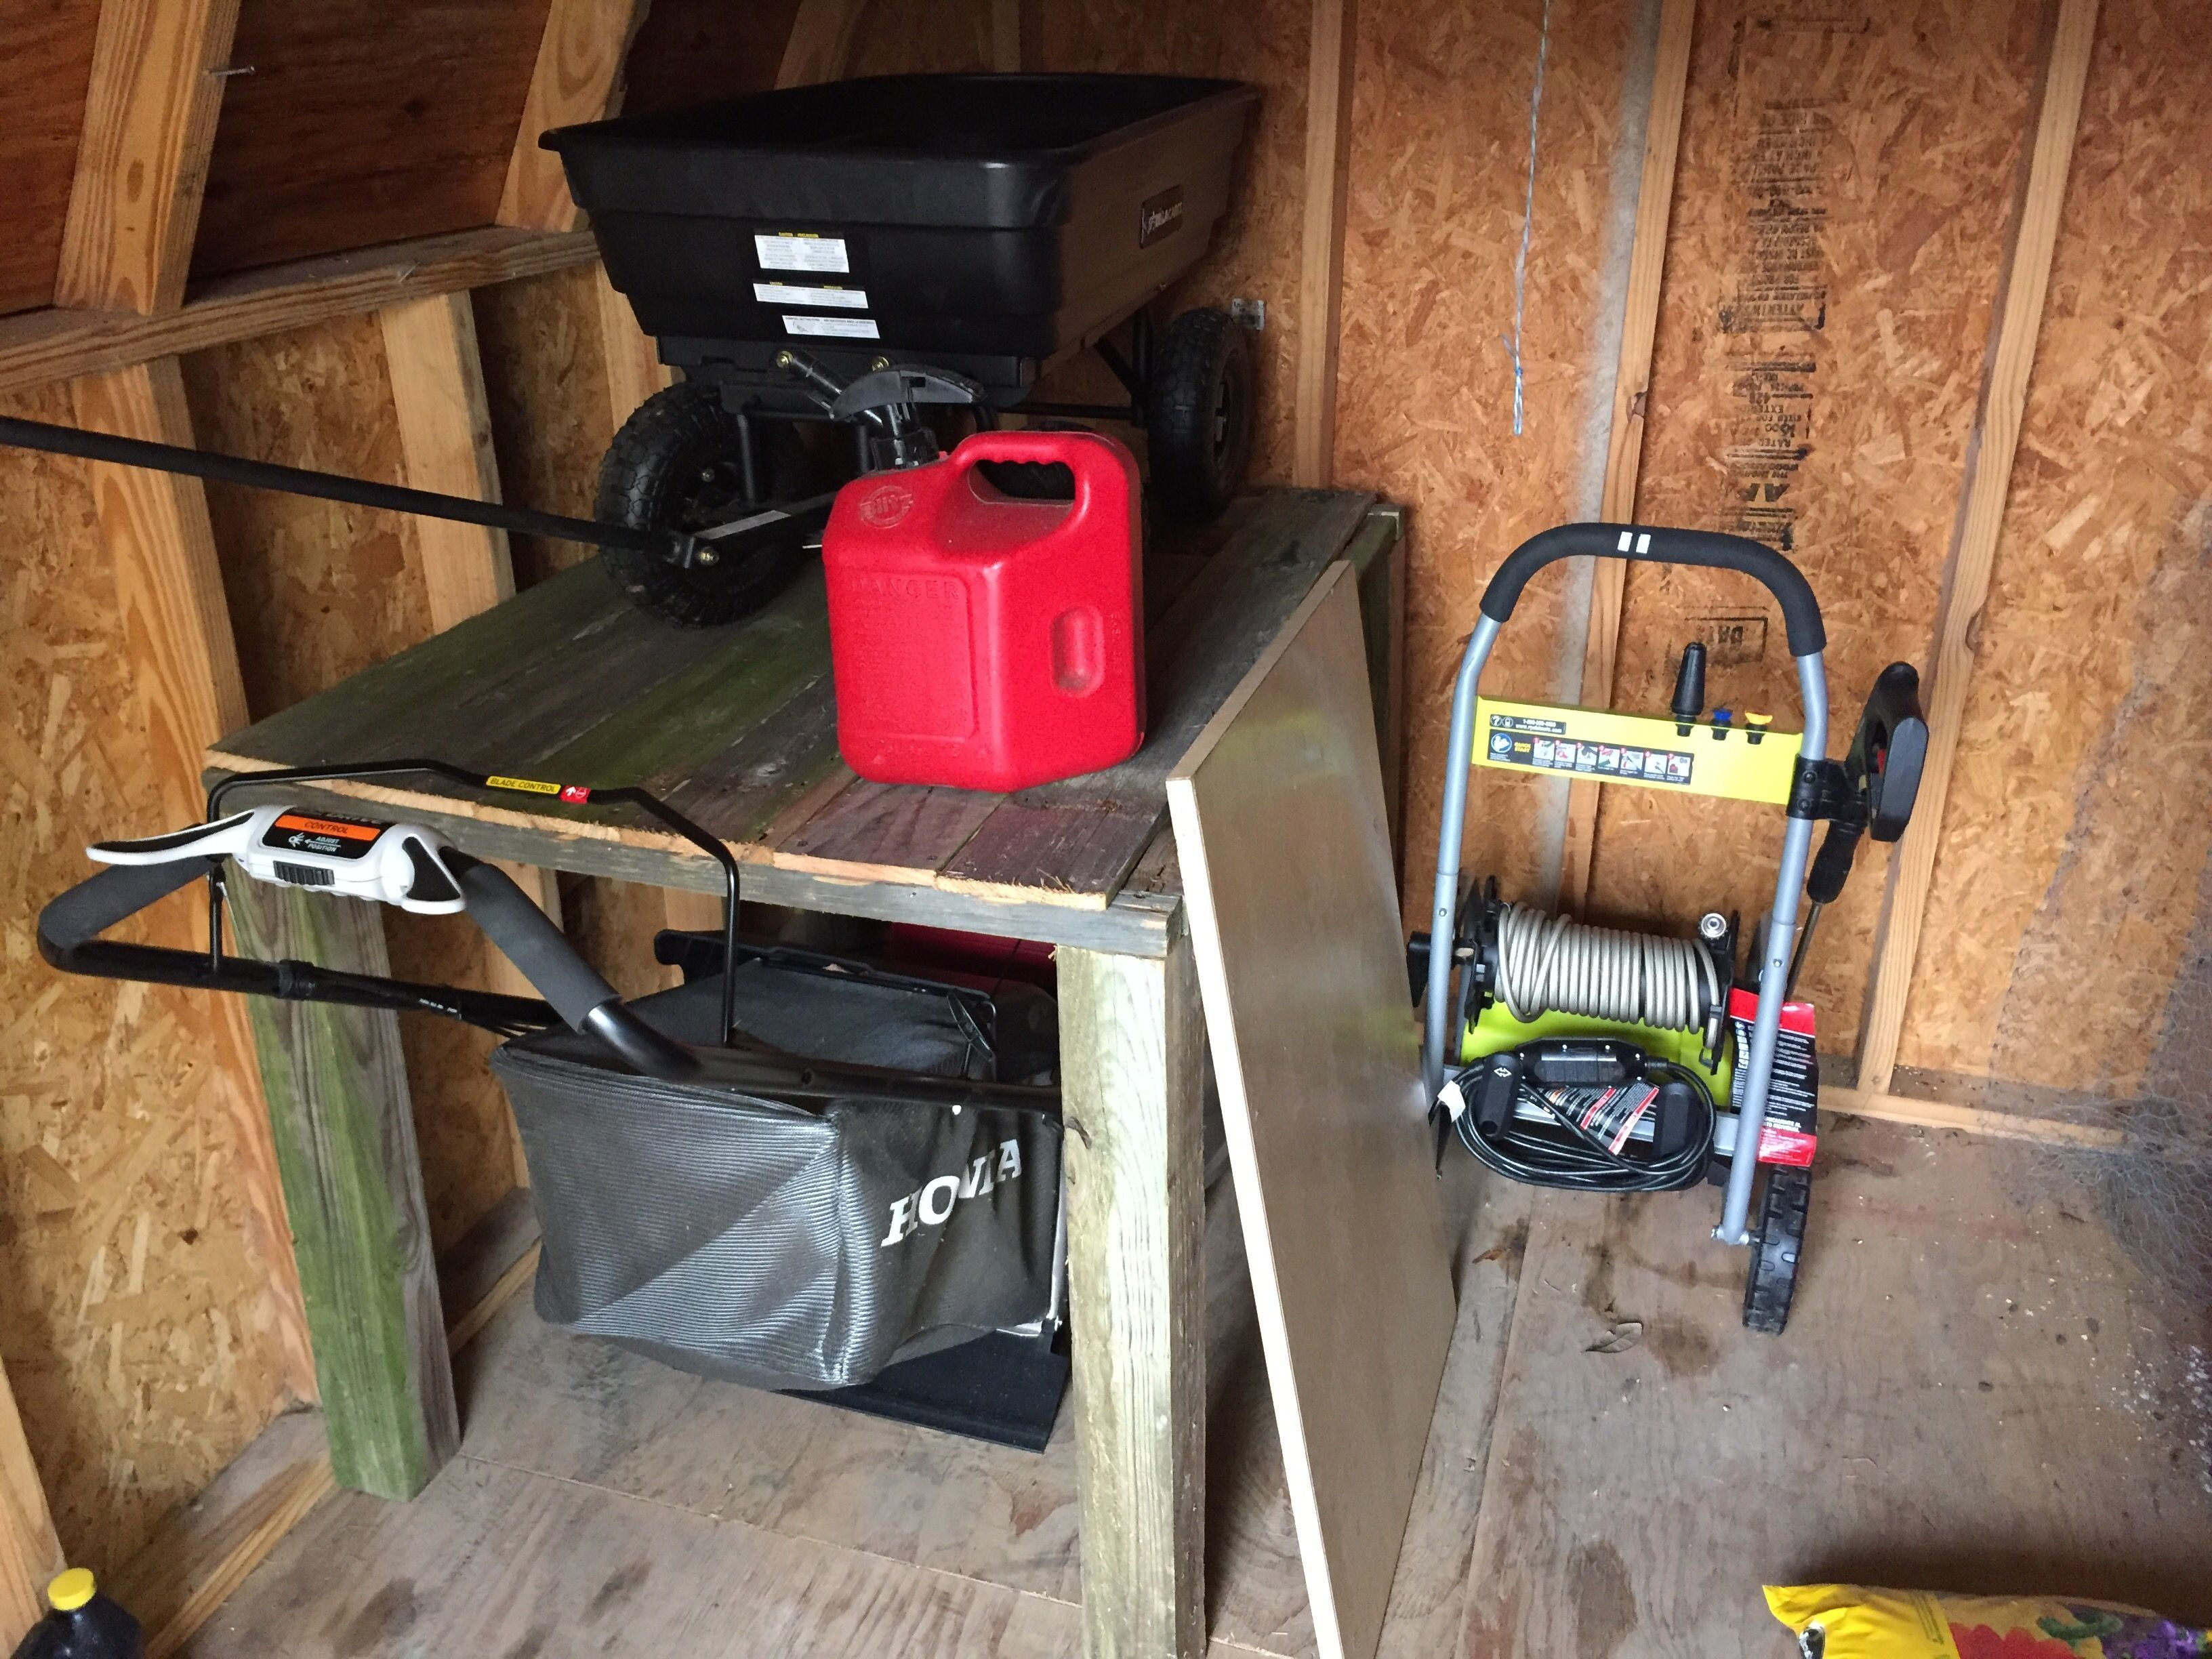 Lawnmower Storage For Shed Or Garage To Open Up Space.